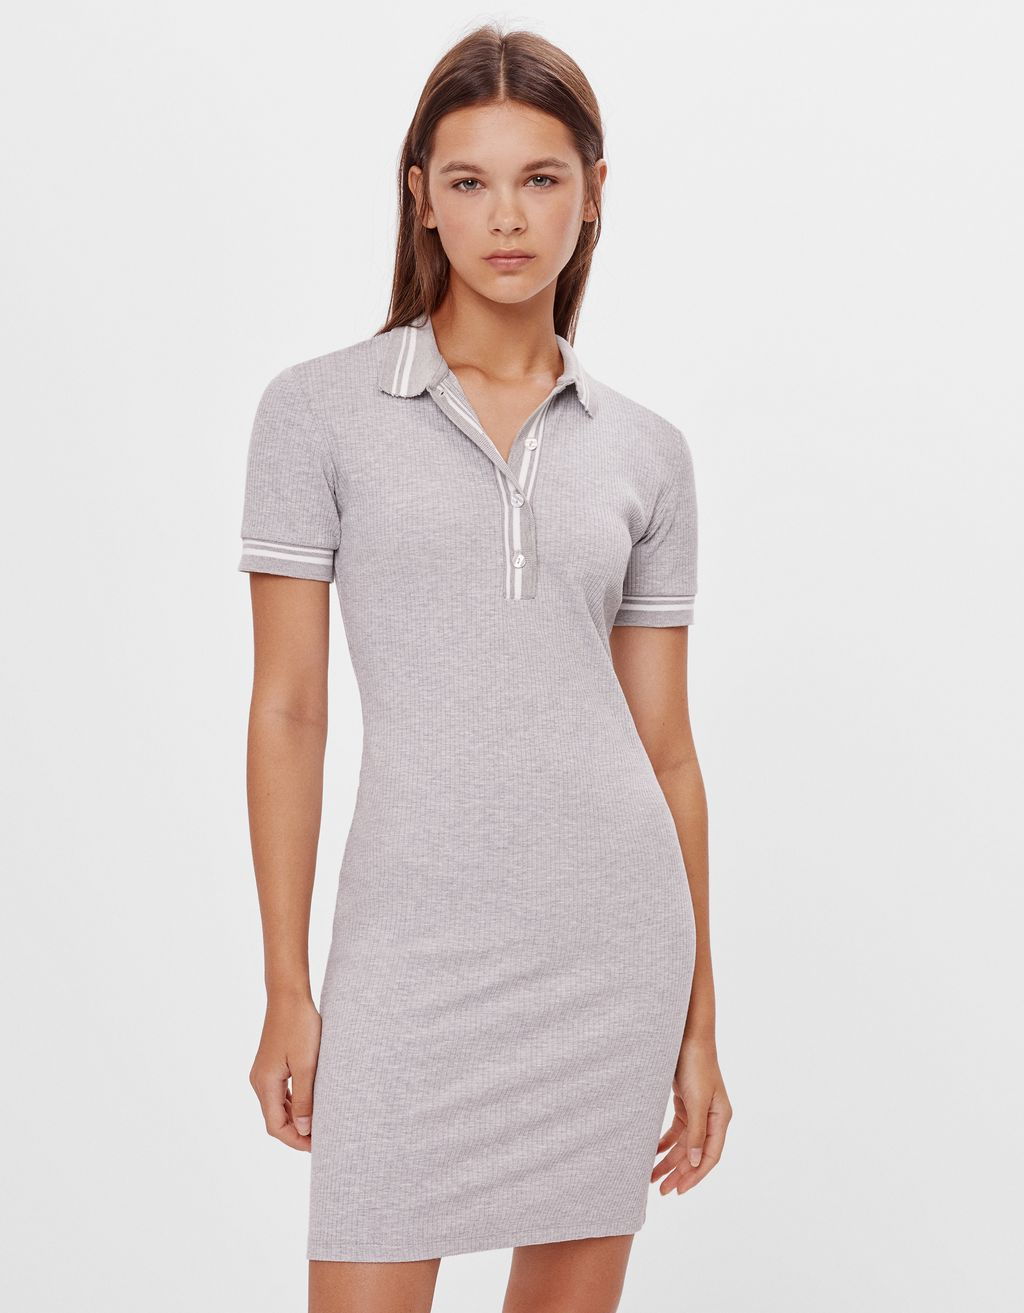 Polo dress with zip